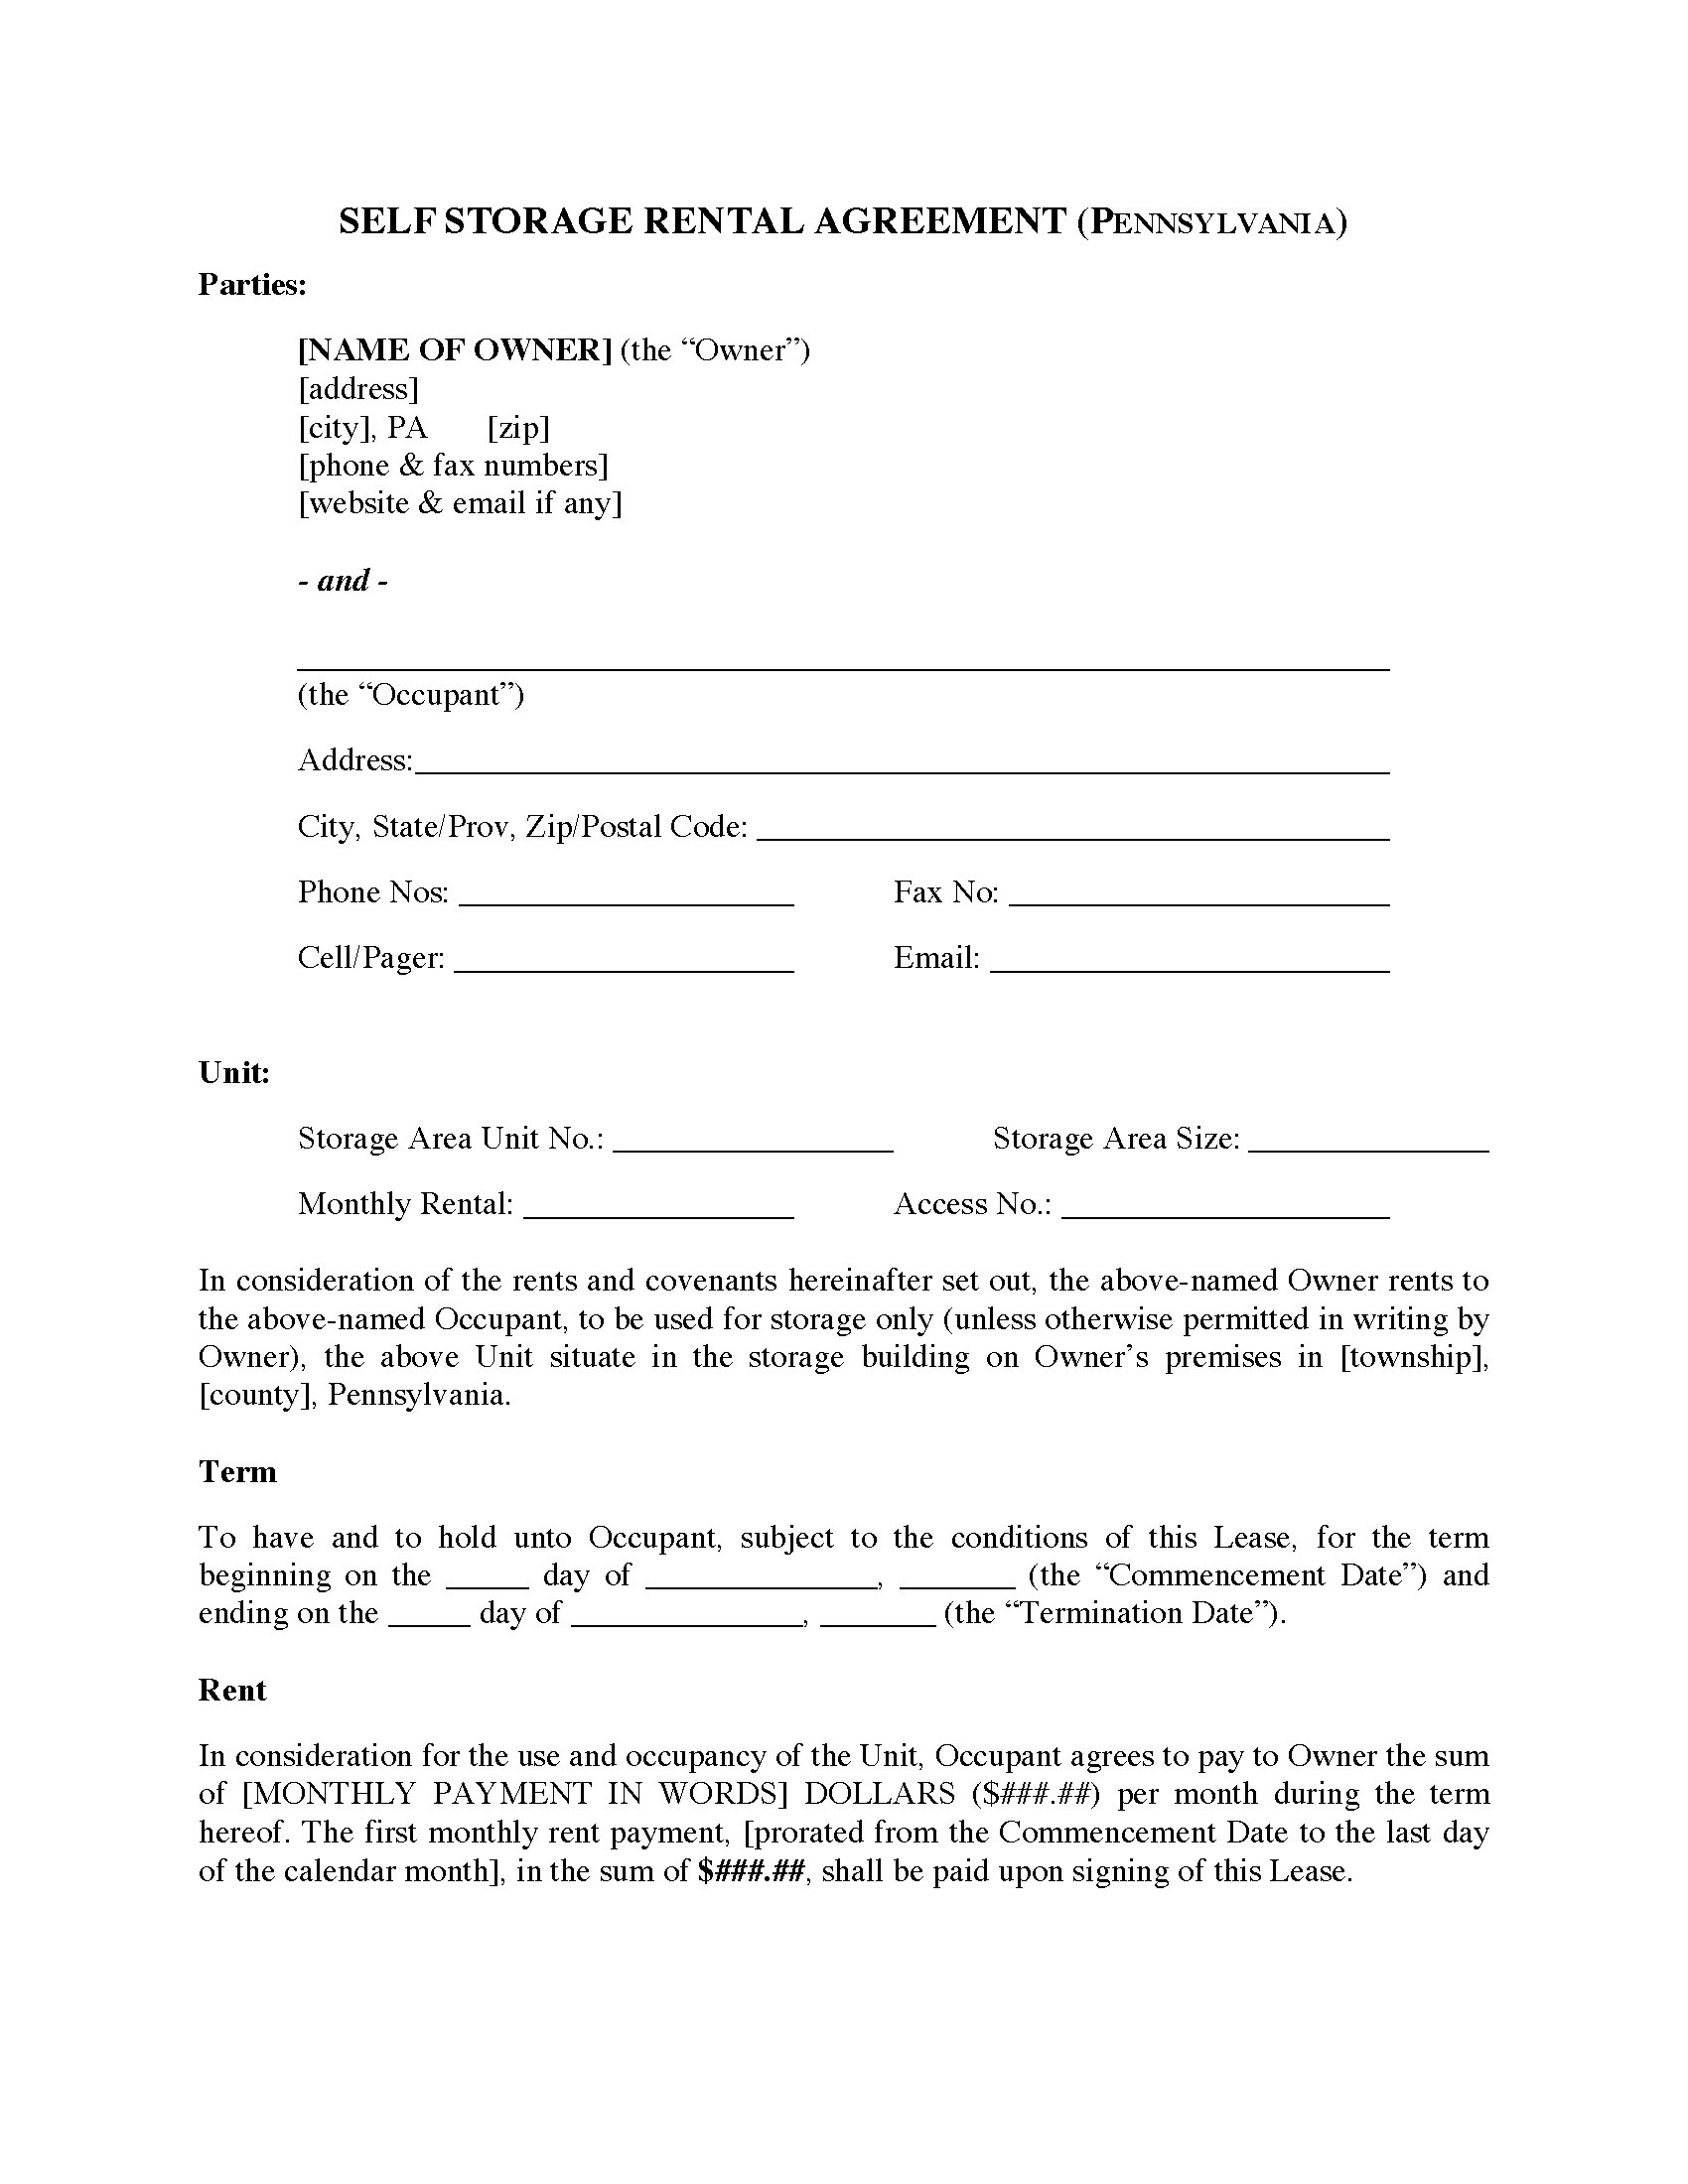 Pennsylvania Self Storage Lease Agreement Legal Forms And Business